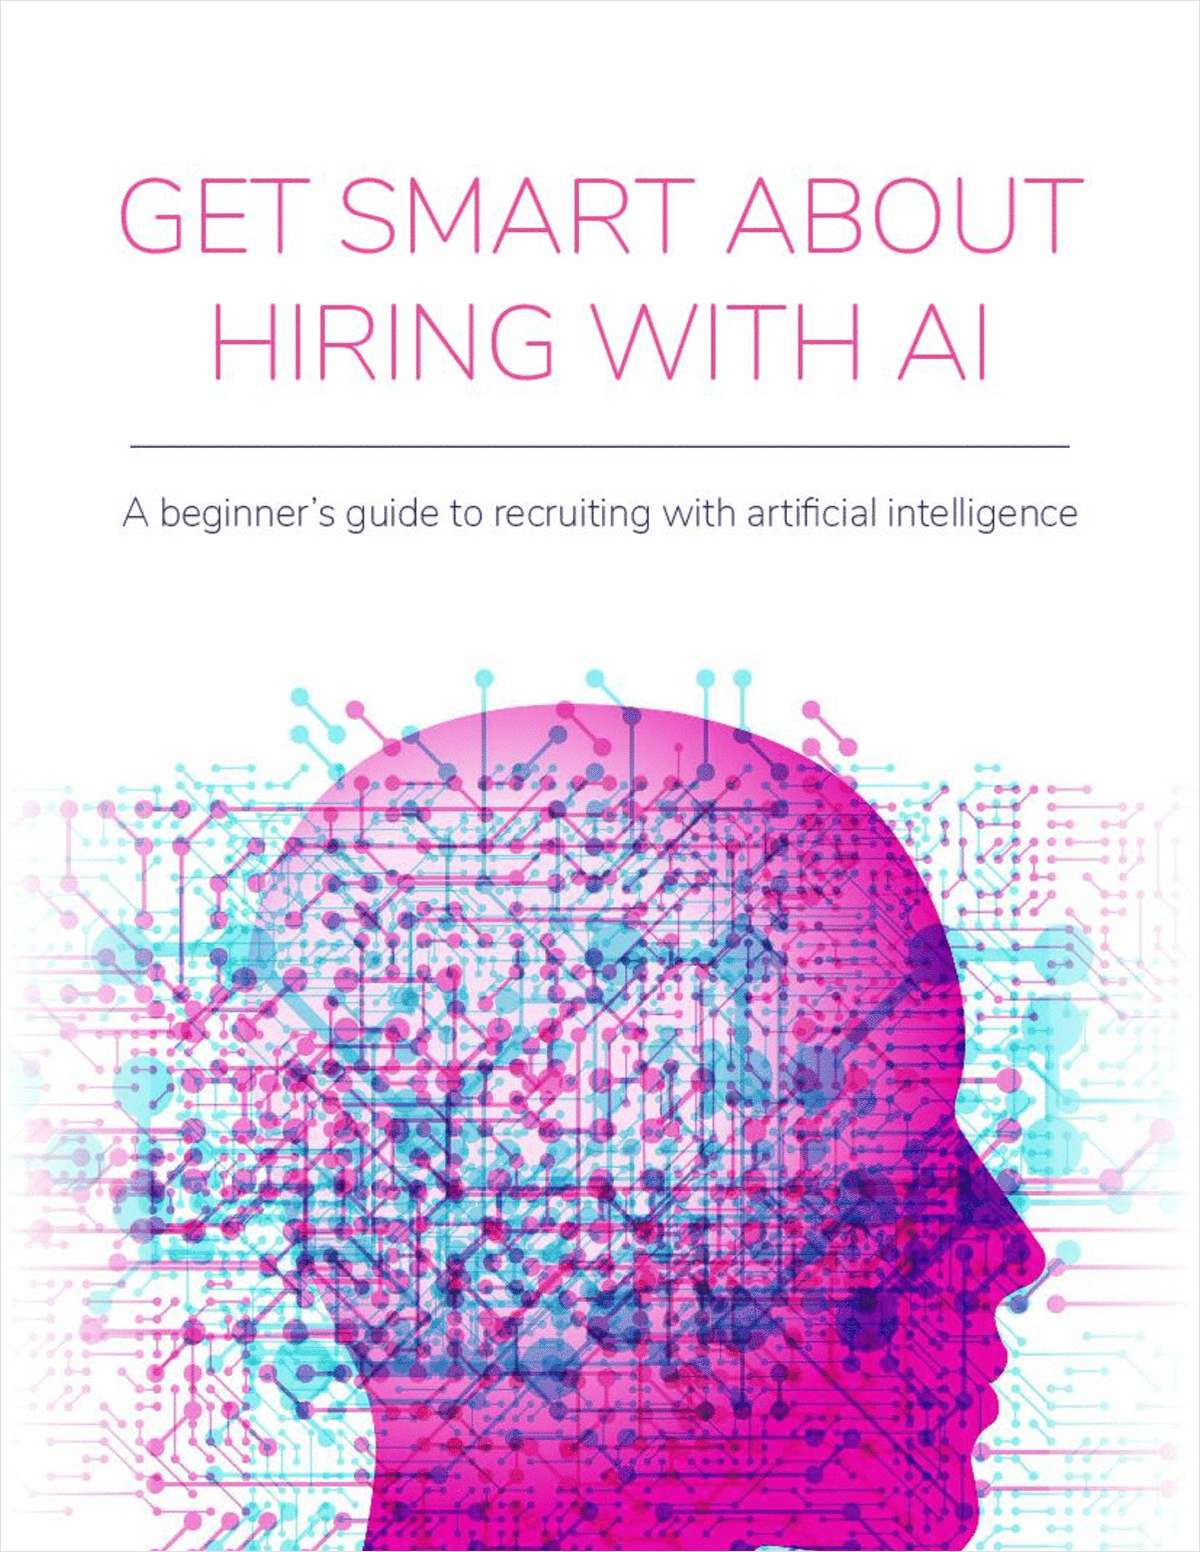 Get Smart About Hiring with AI